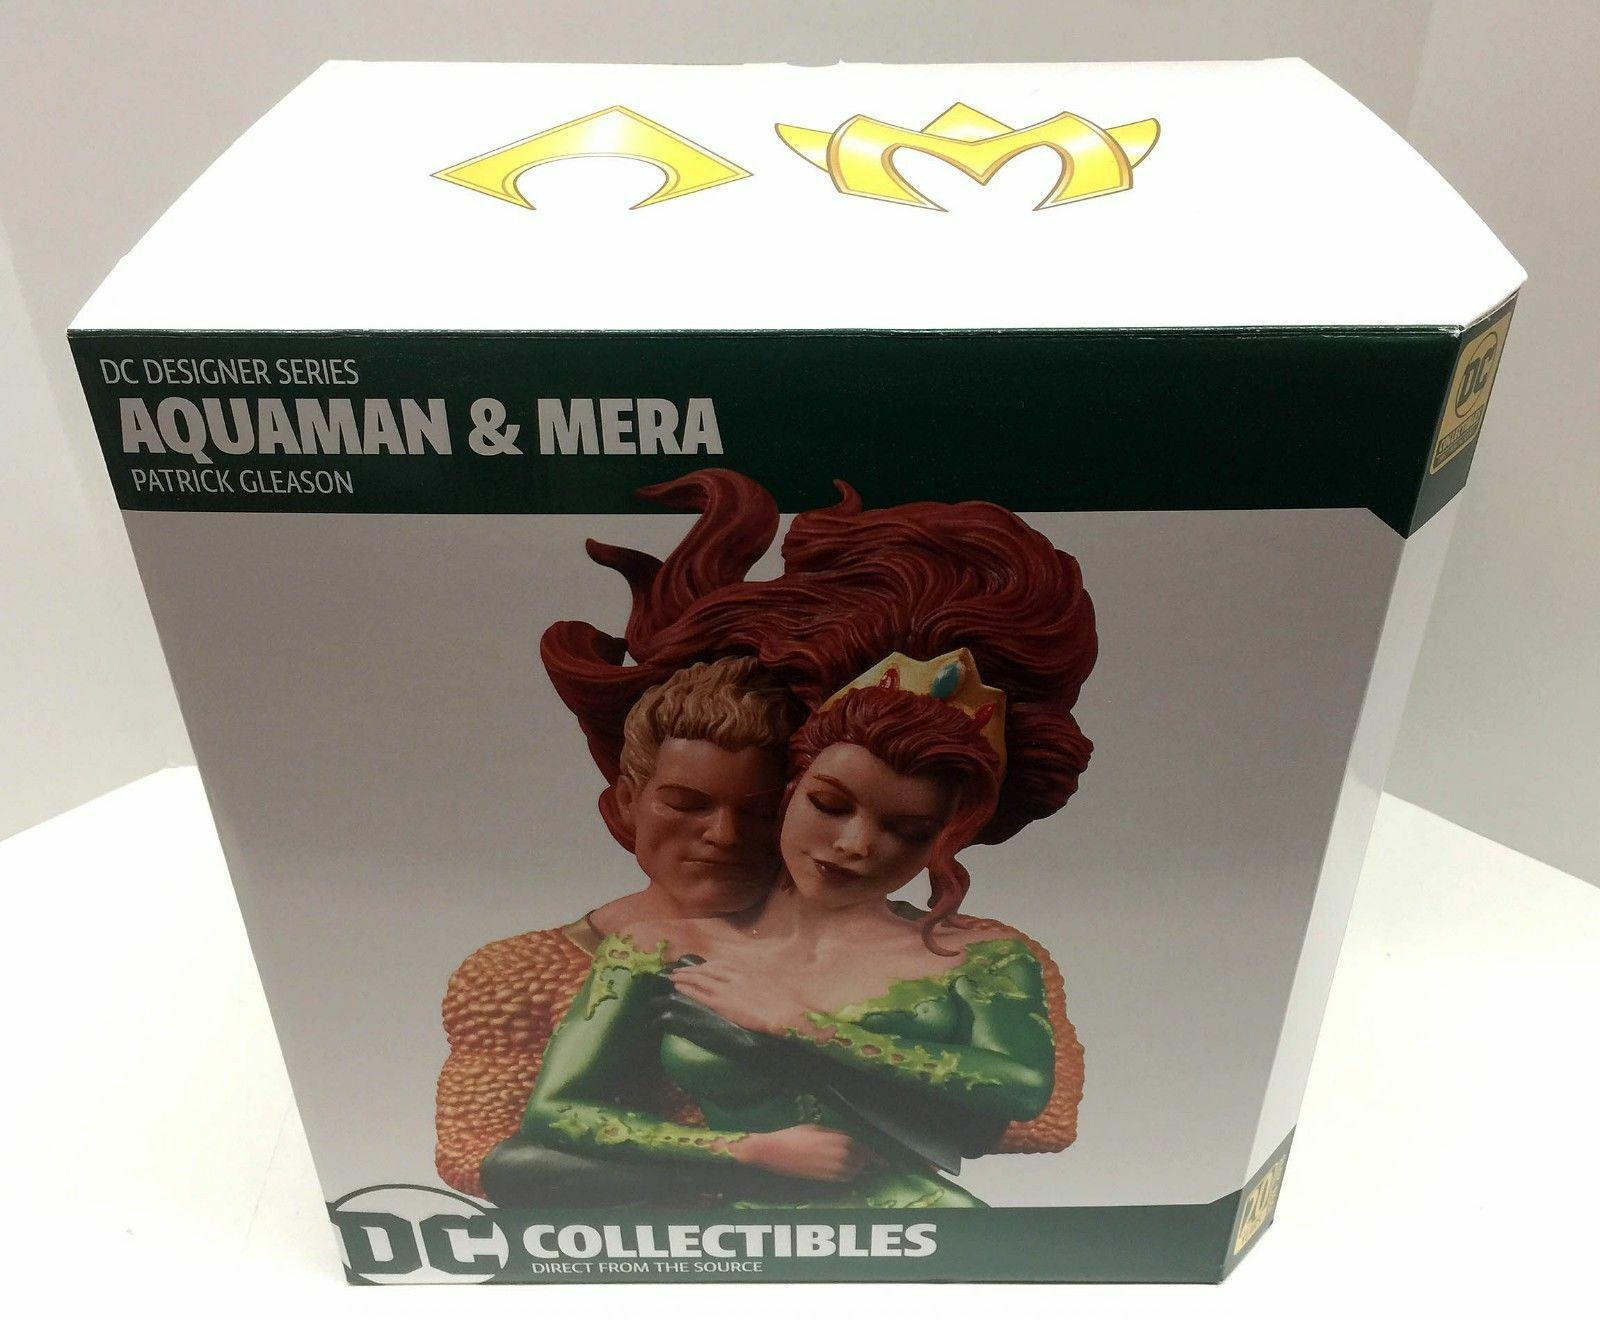 Aquaman and Mera by Pat Gleason Resin Statue Limited Limited Limited DC Comics Designer Series d77fe9